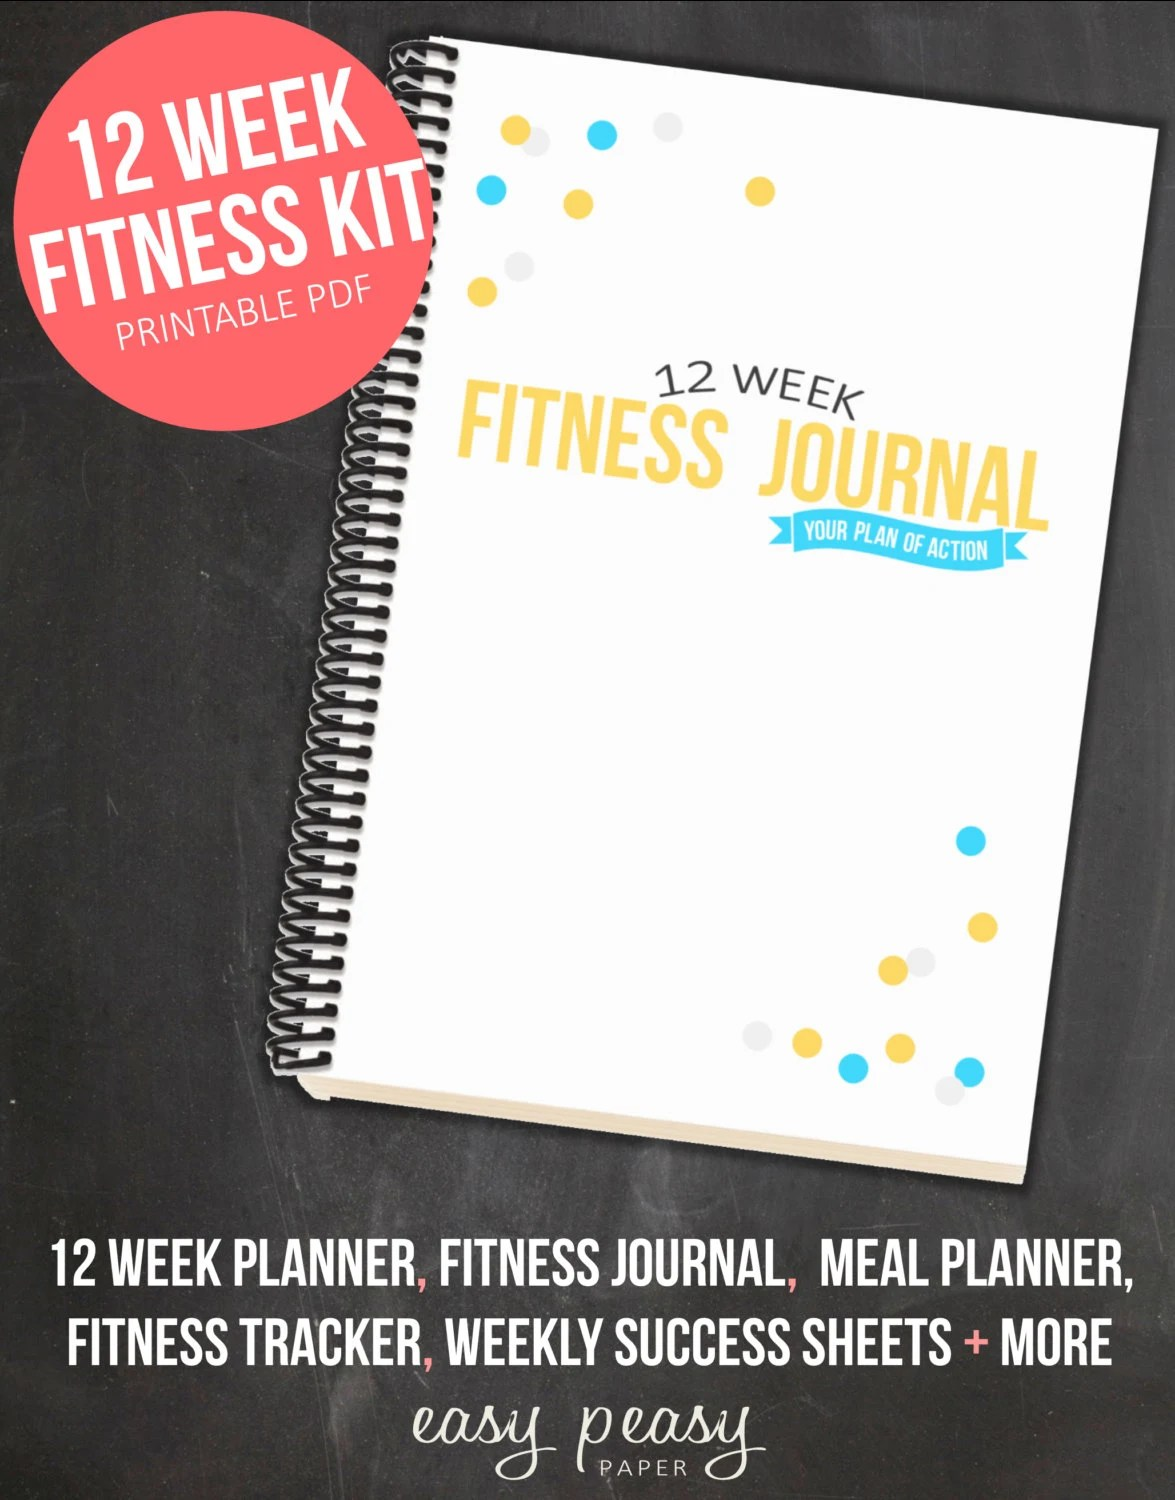 12 Week Fitness Planner Printable Health And By Easypeasypaper